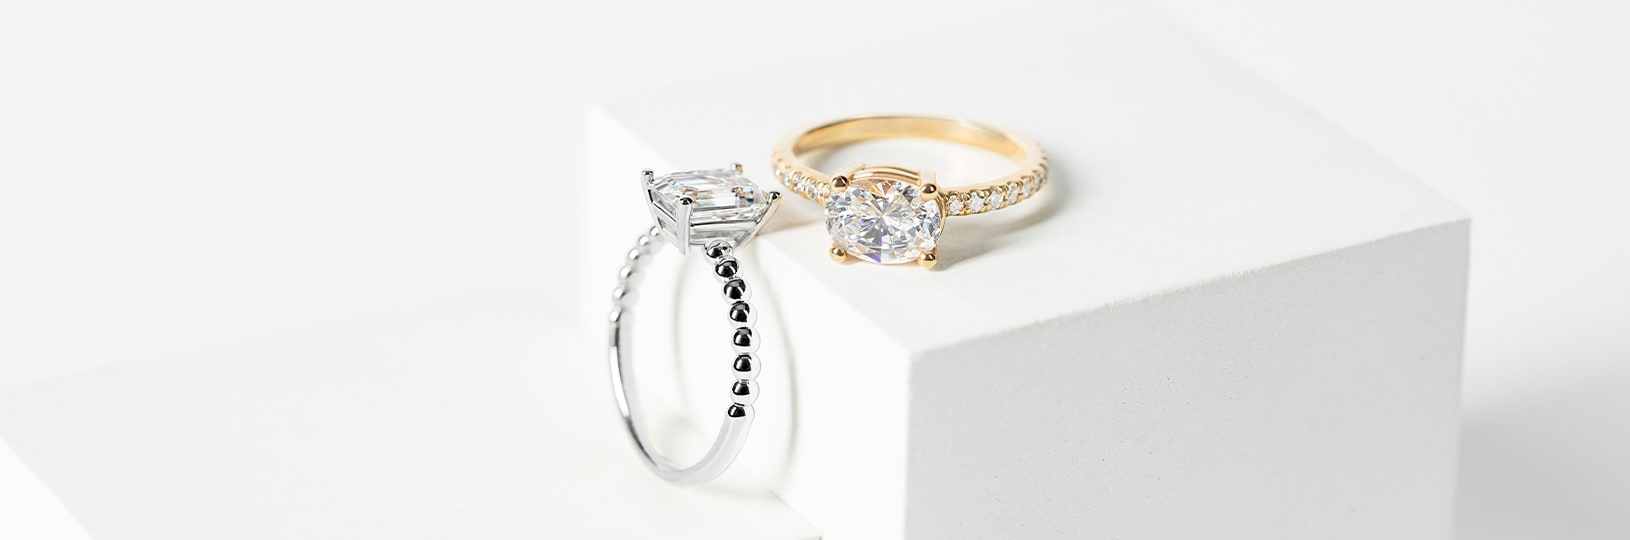 A white gold ring and a yellow gold ring